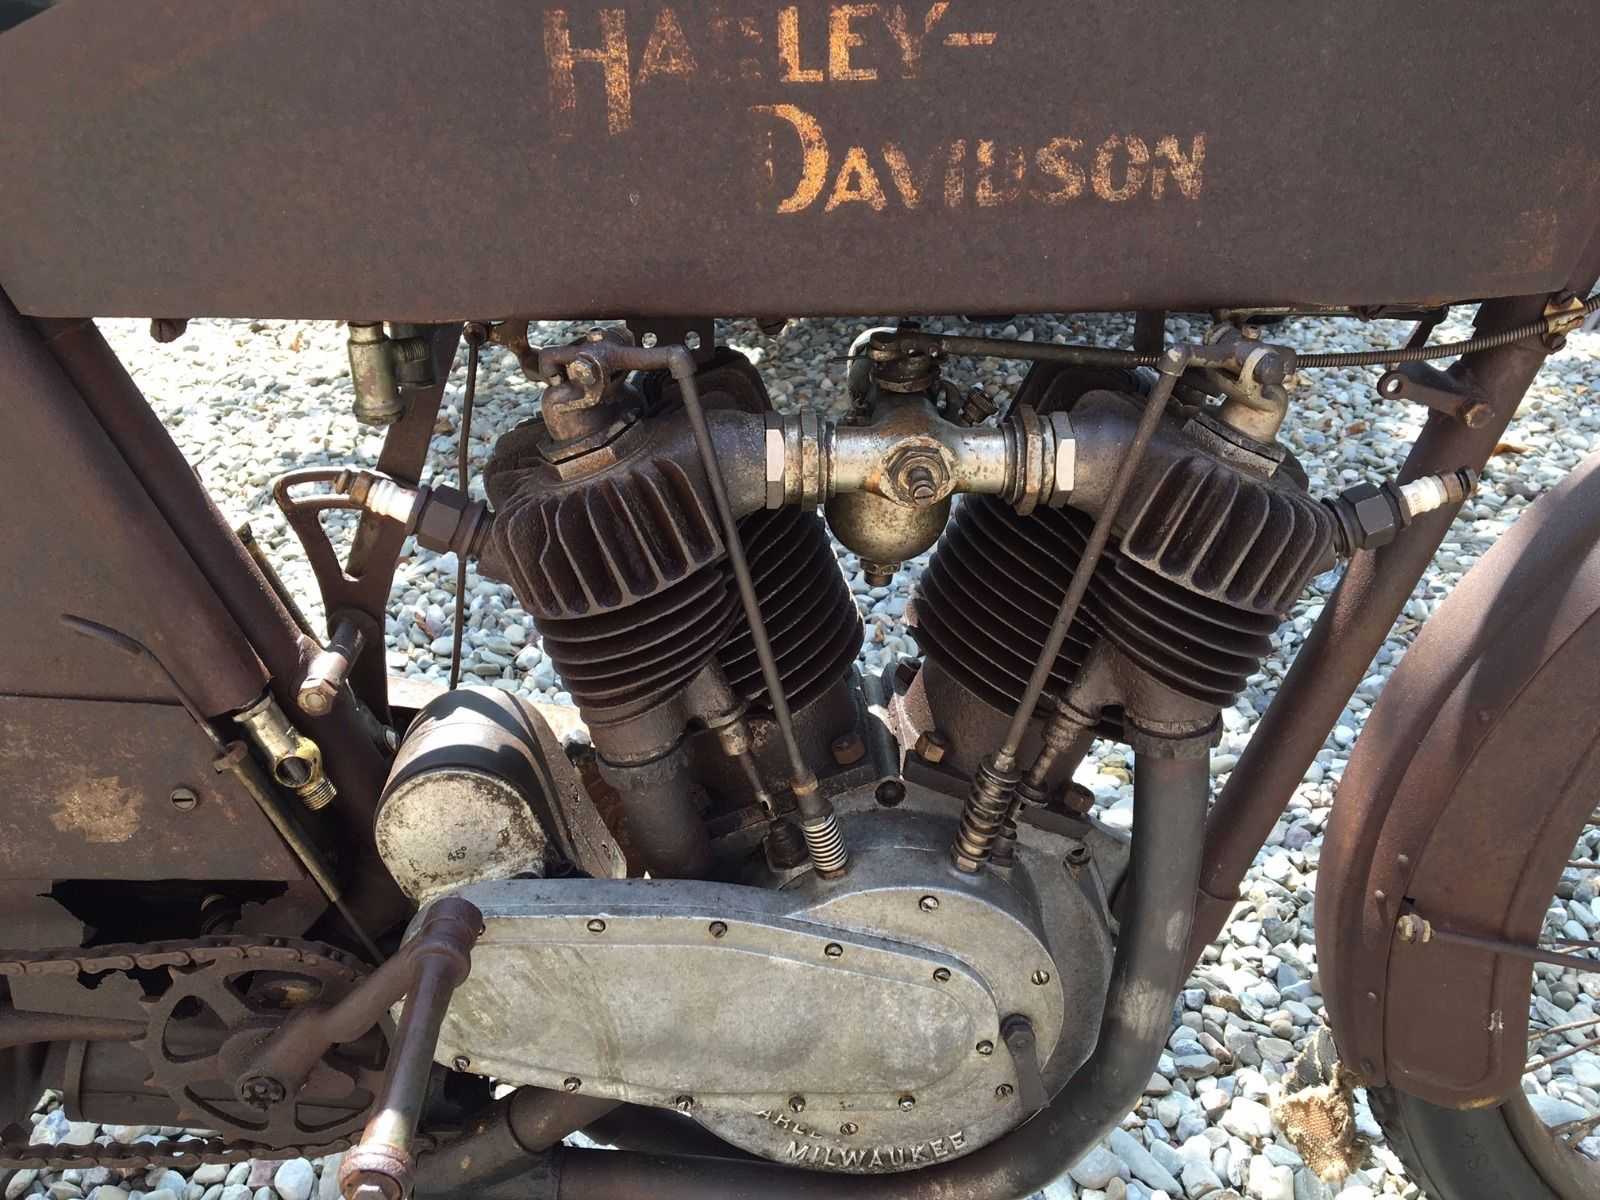 In 1911 the improved 811cc Harley-Davidson V twin was introduced. This is the engine of the bike in our pictures.